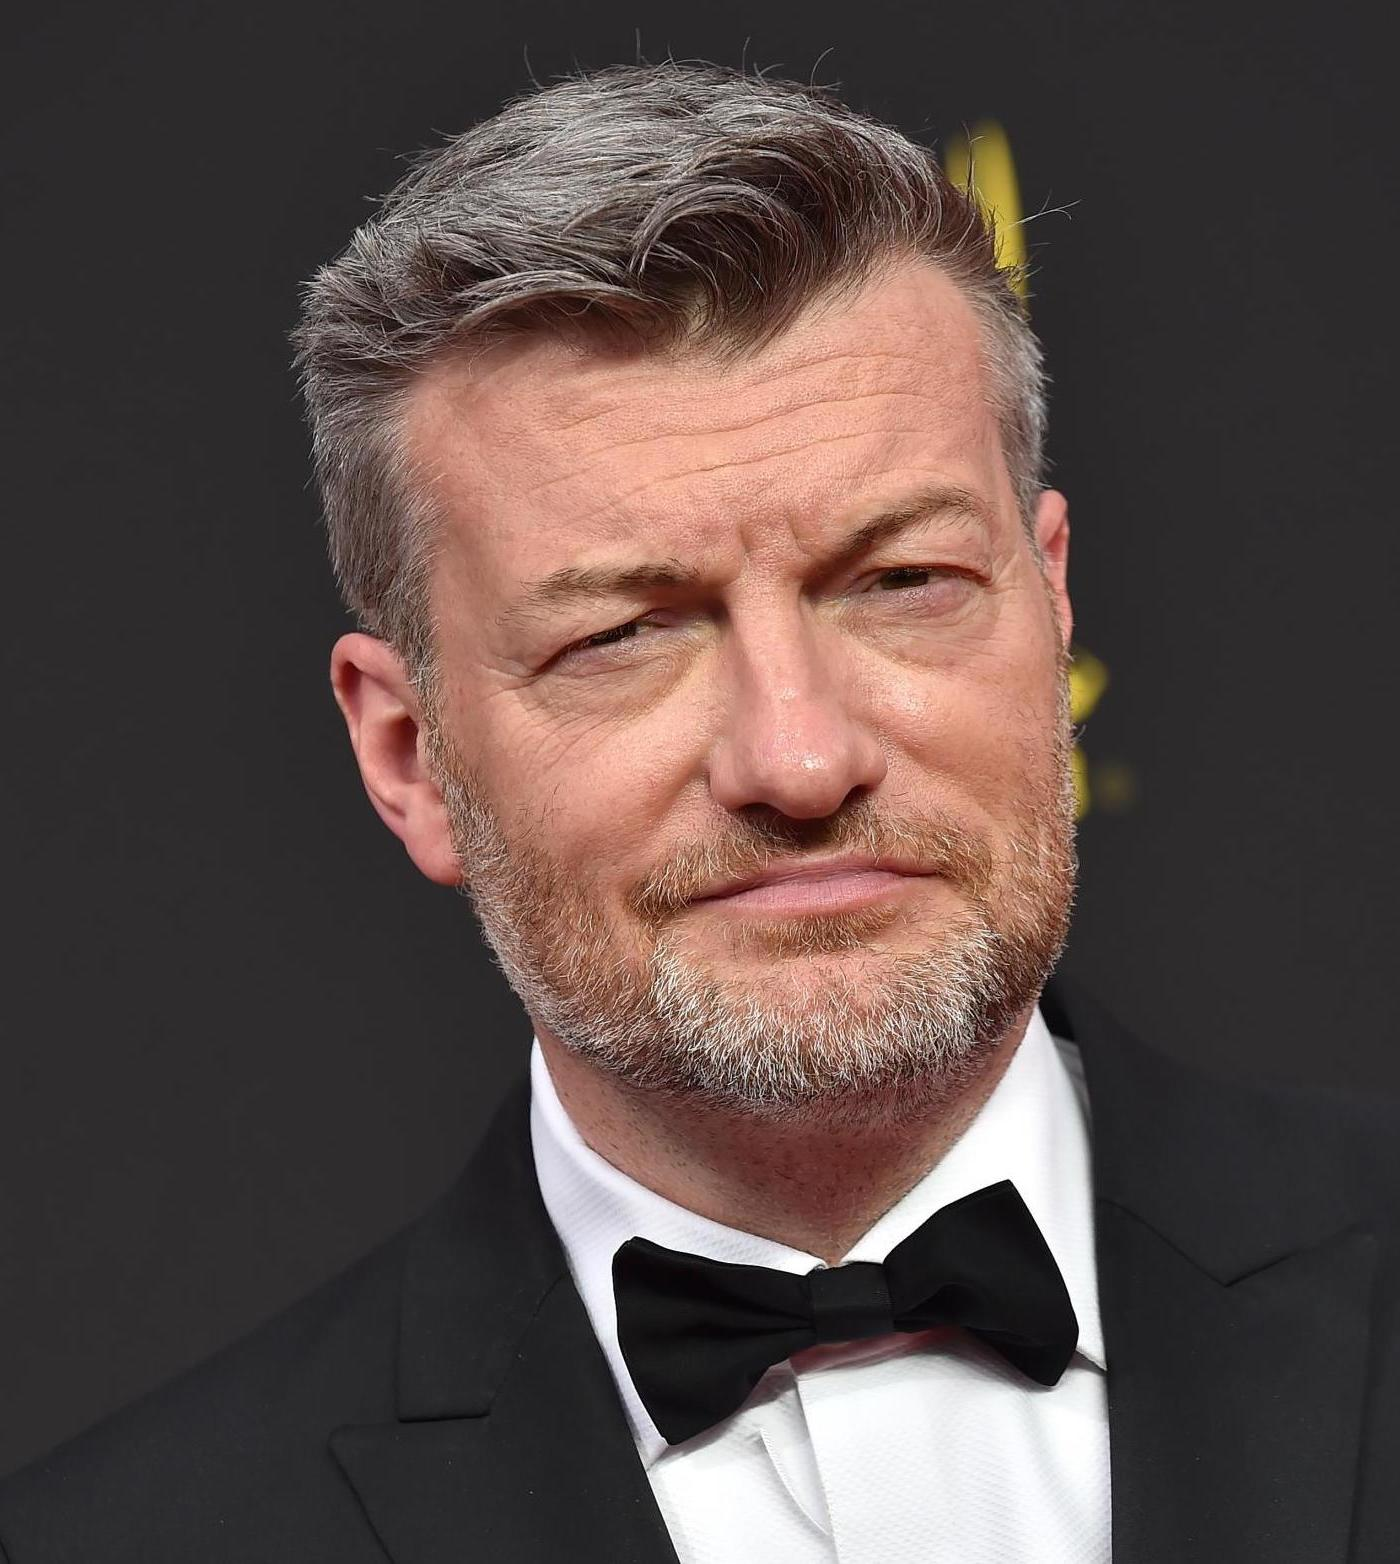 charlie brooker 25 Things You Didn't Know About Black Mirror: Bandersnatch